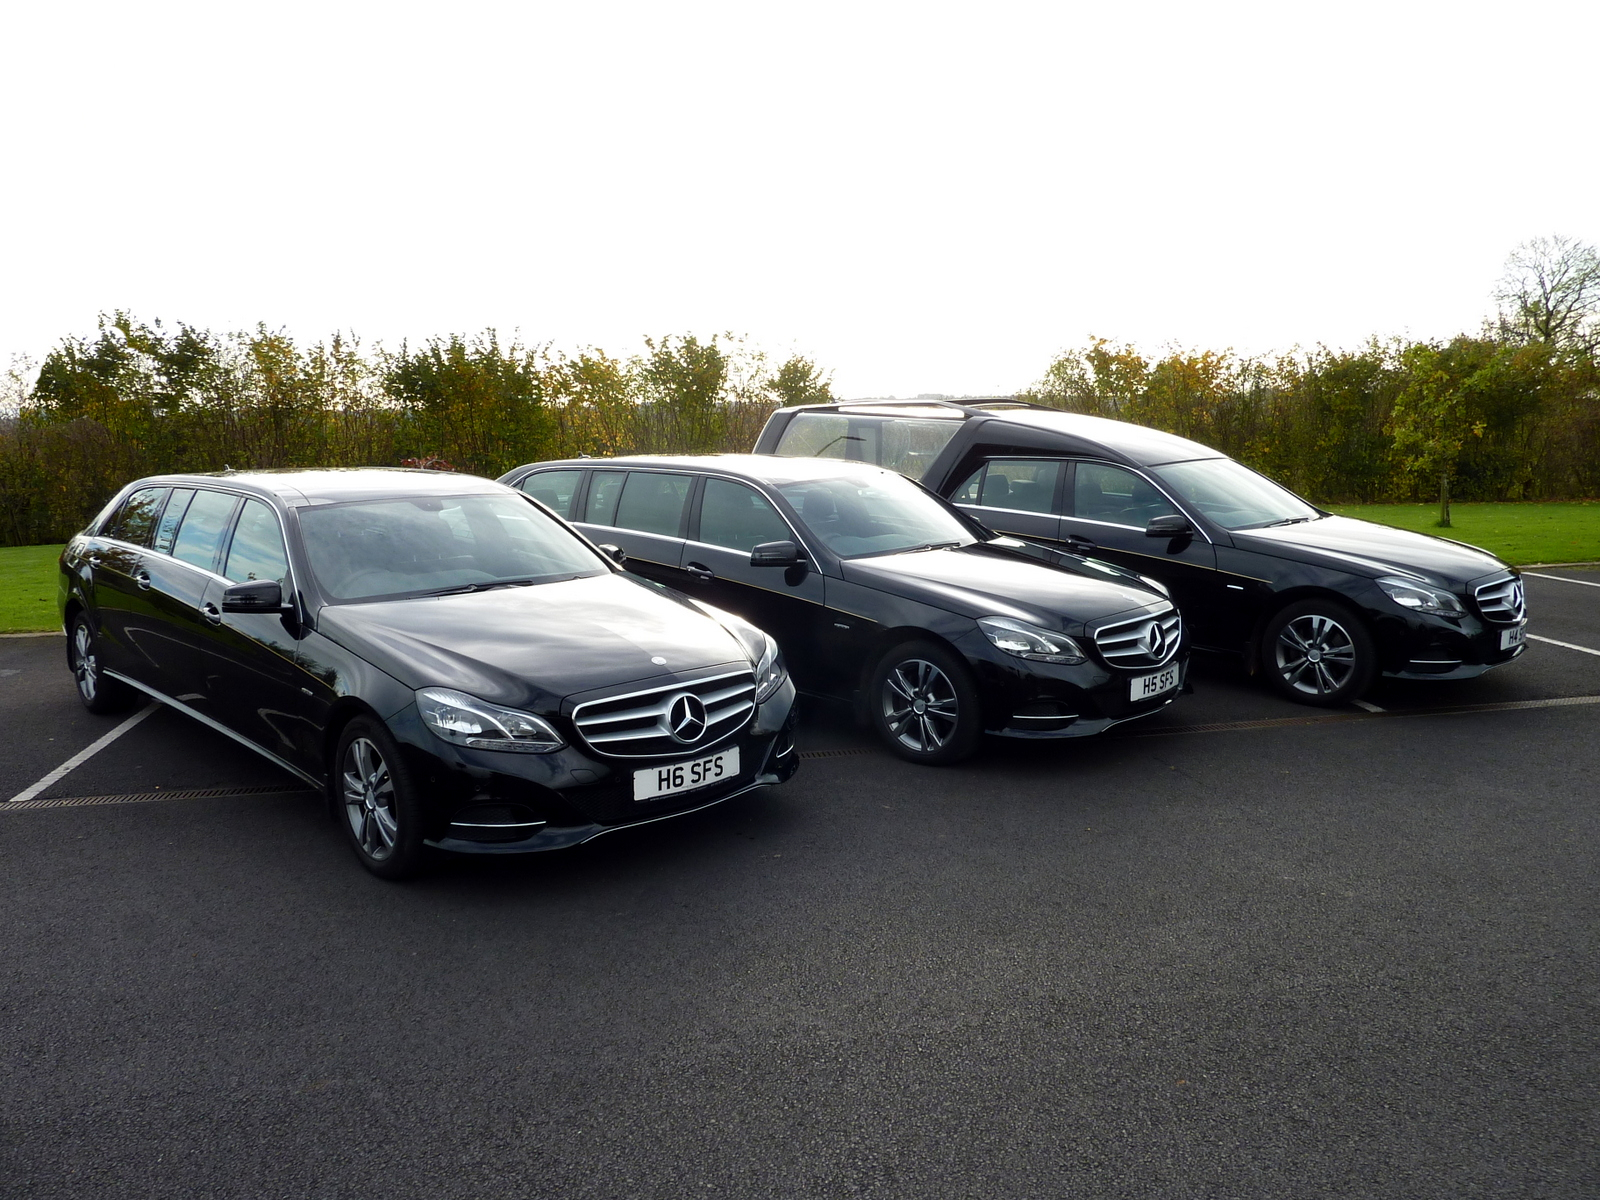 Fourth Superior fleet for sixth generation of Silletts family funeral service